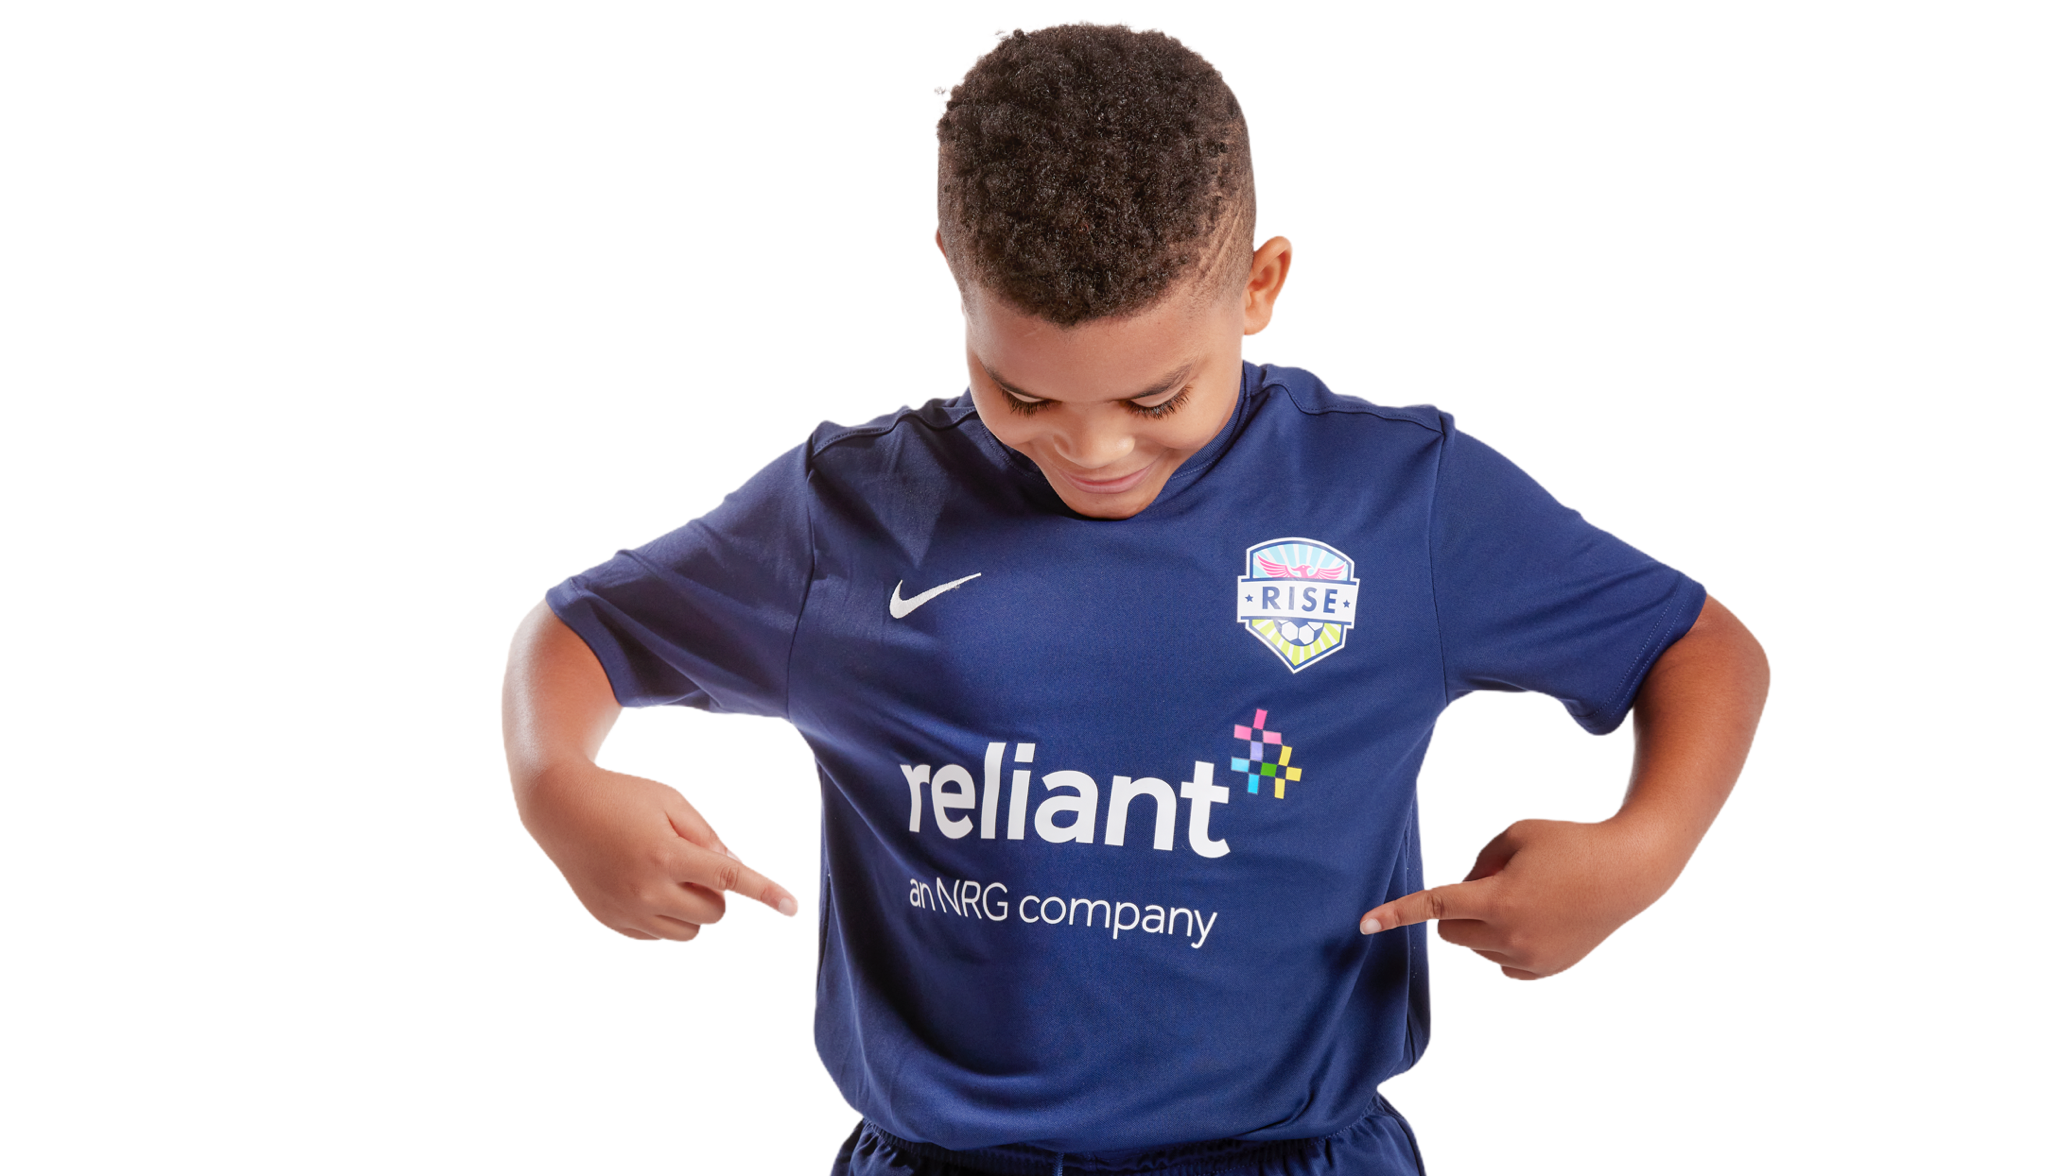 Reliant powers youth soccer